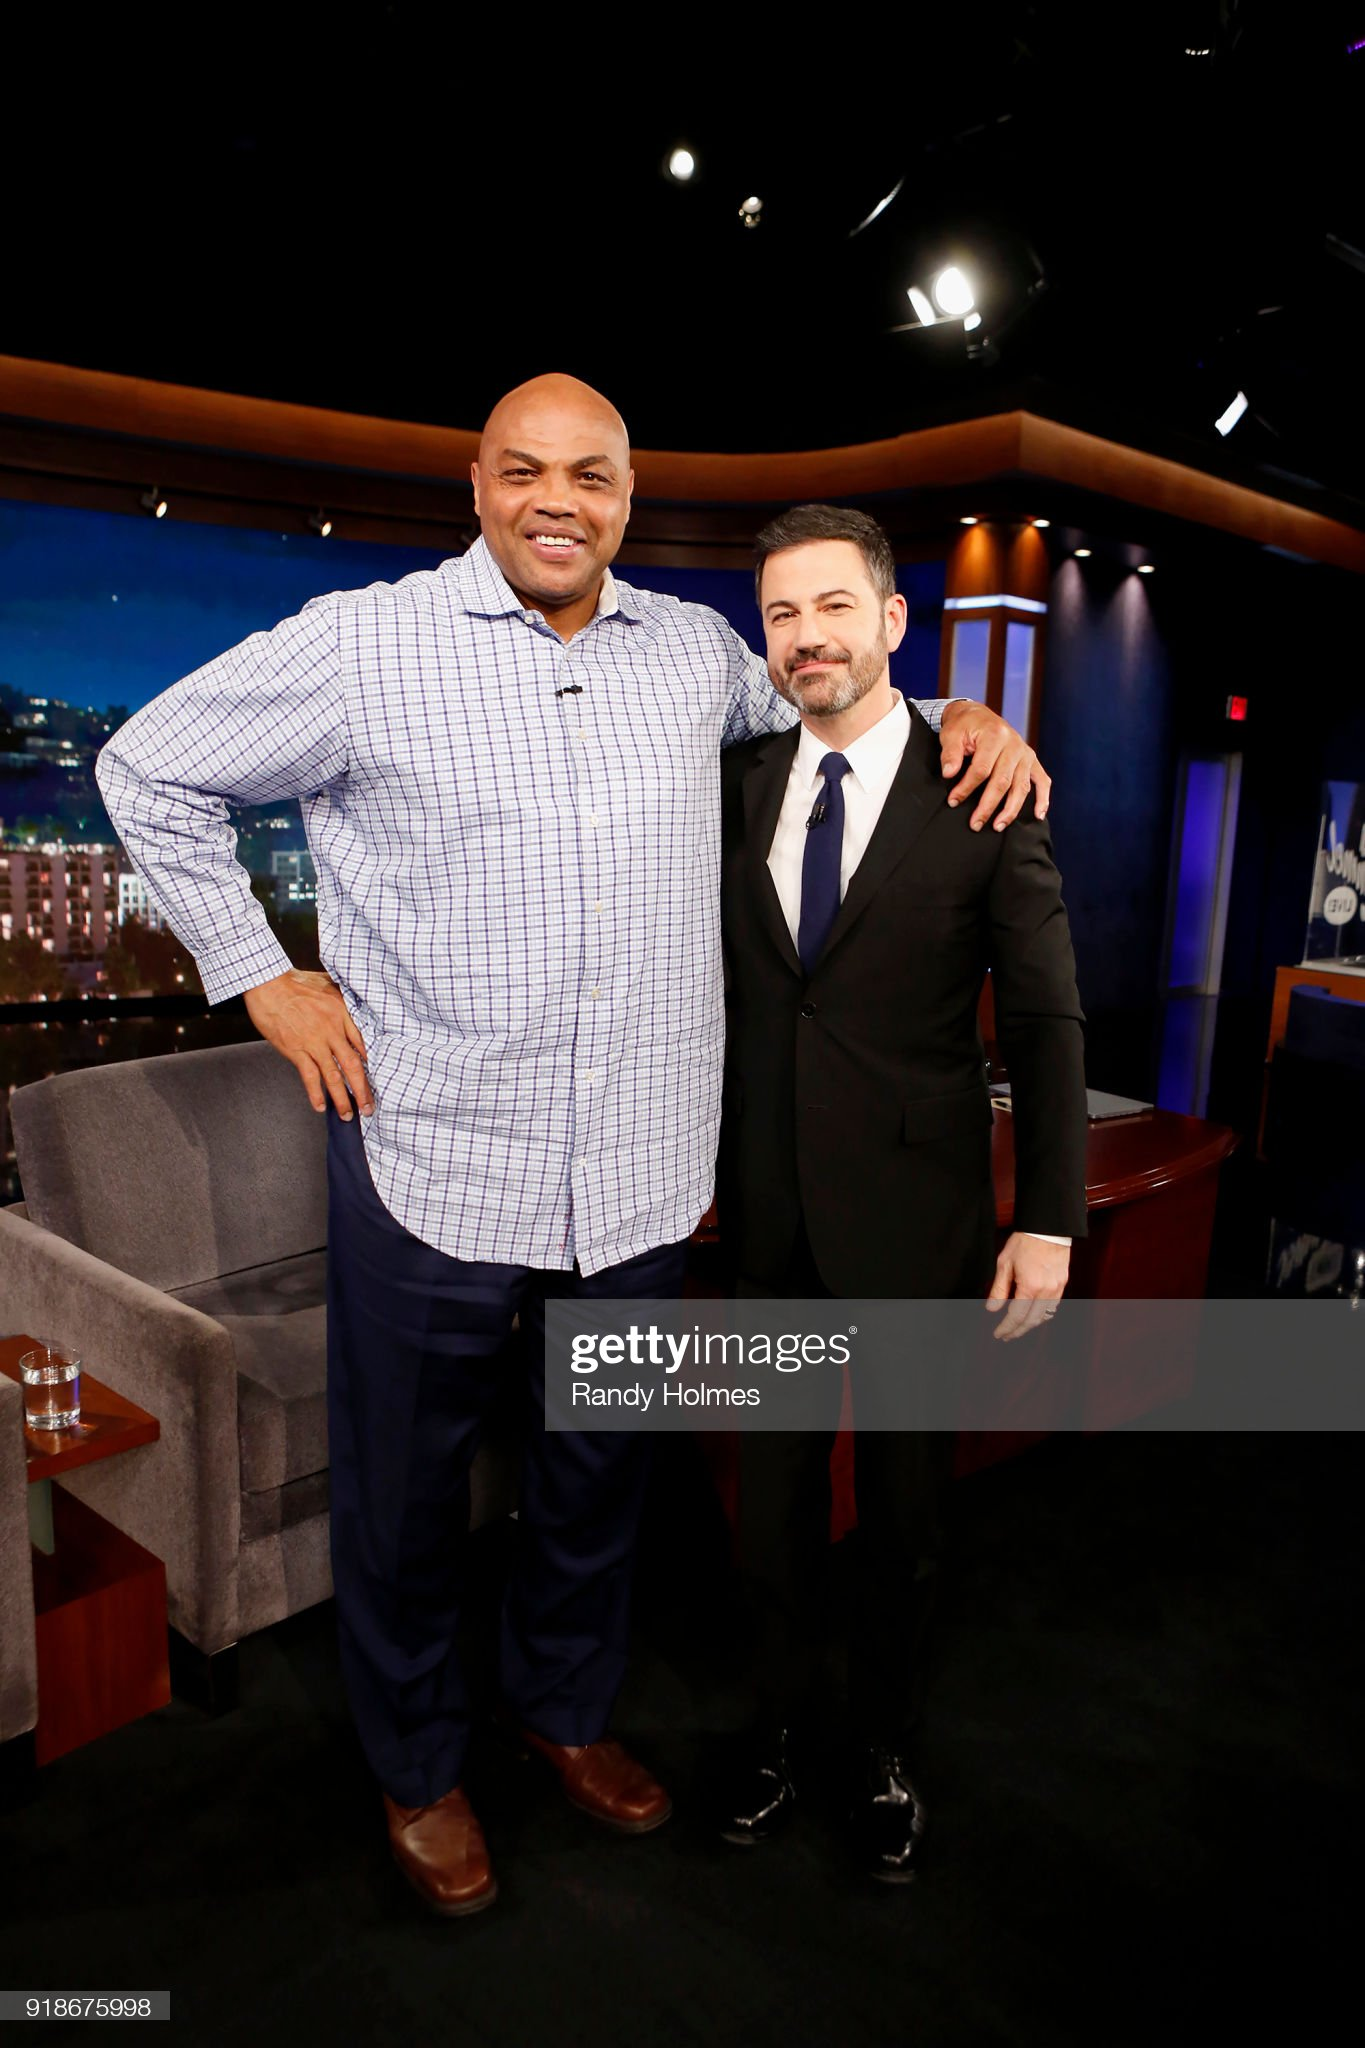 ¿Cuánto mide Jimmy Kimmel? - Altura - Real height Jimmy-kimmel-live-airs-every-weeknight-at-1135-pm-est-and-features-a-picture-id918675998?s=2048x2048